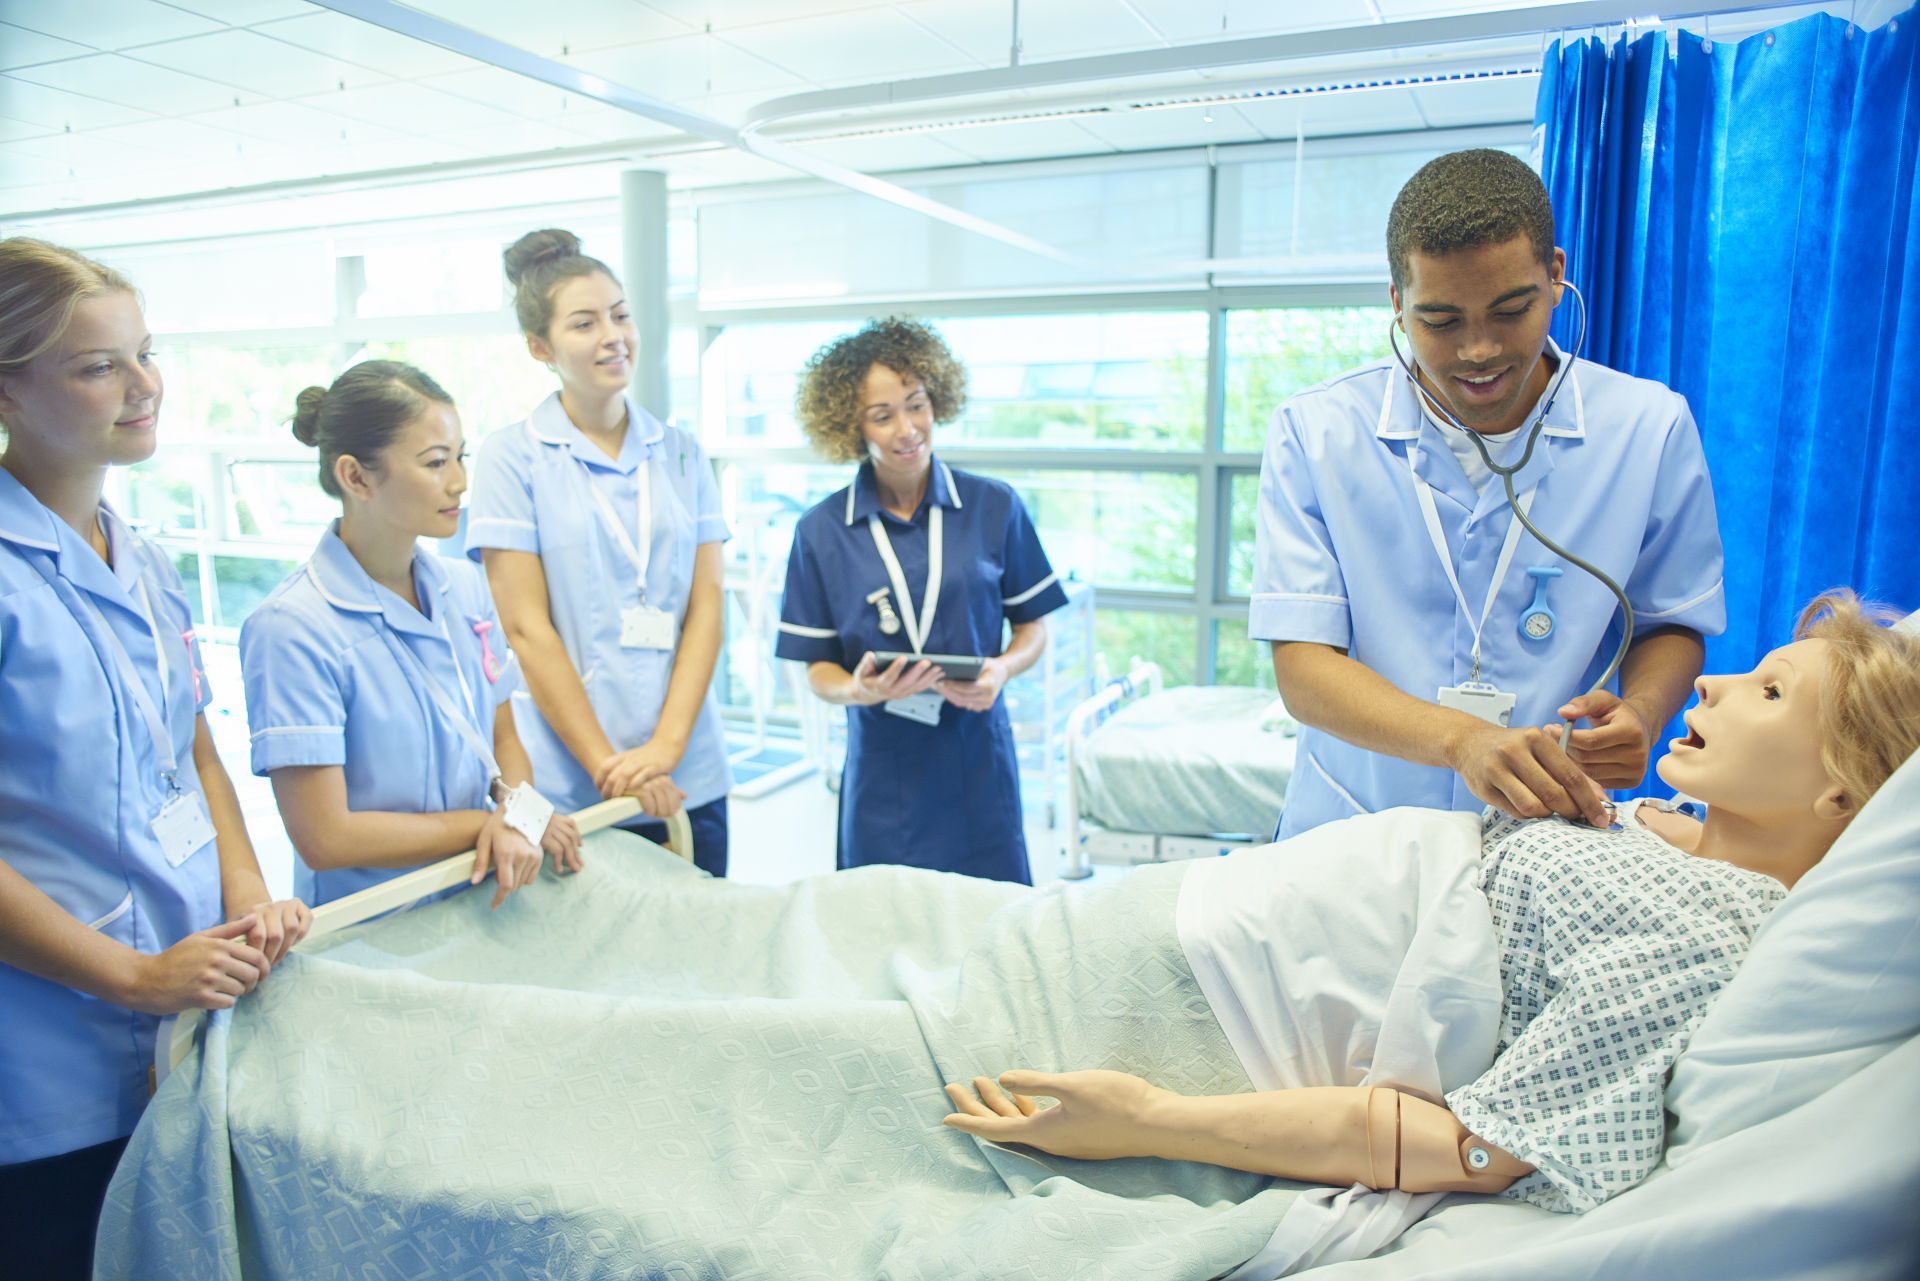 Students in simulation suite with one of them listening to the breathing of medical mannequin